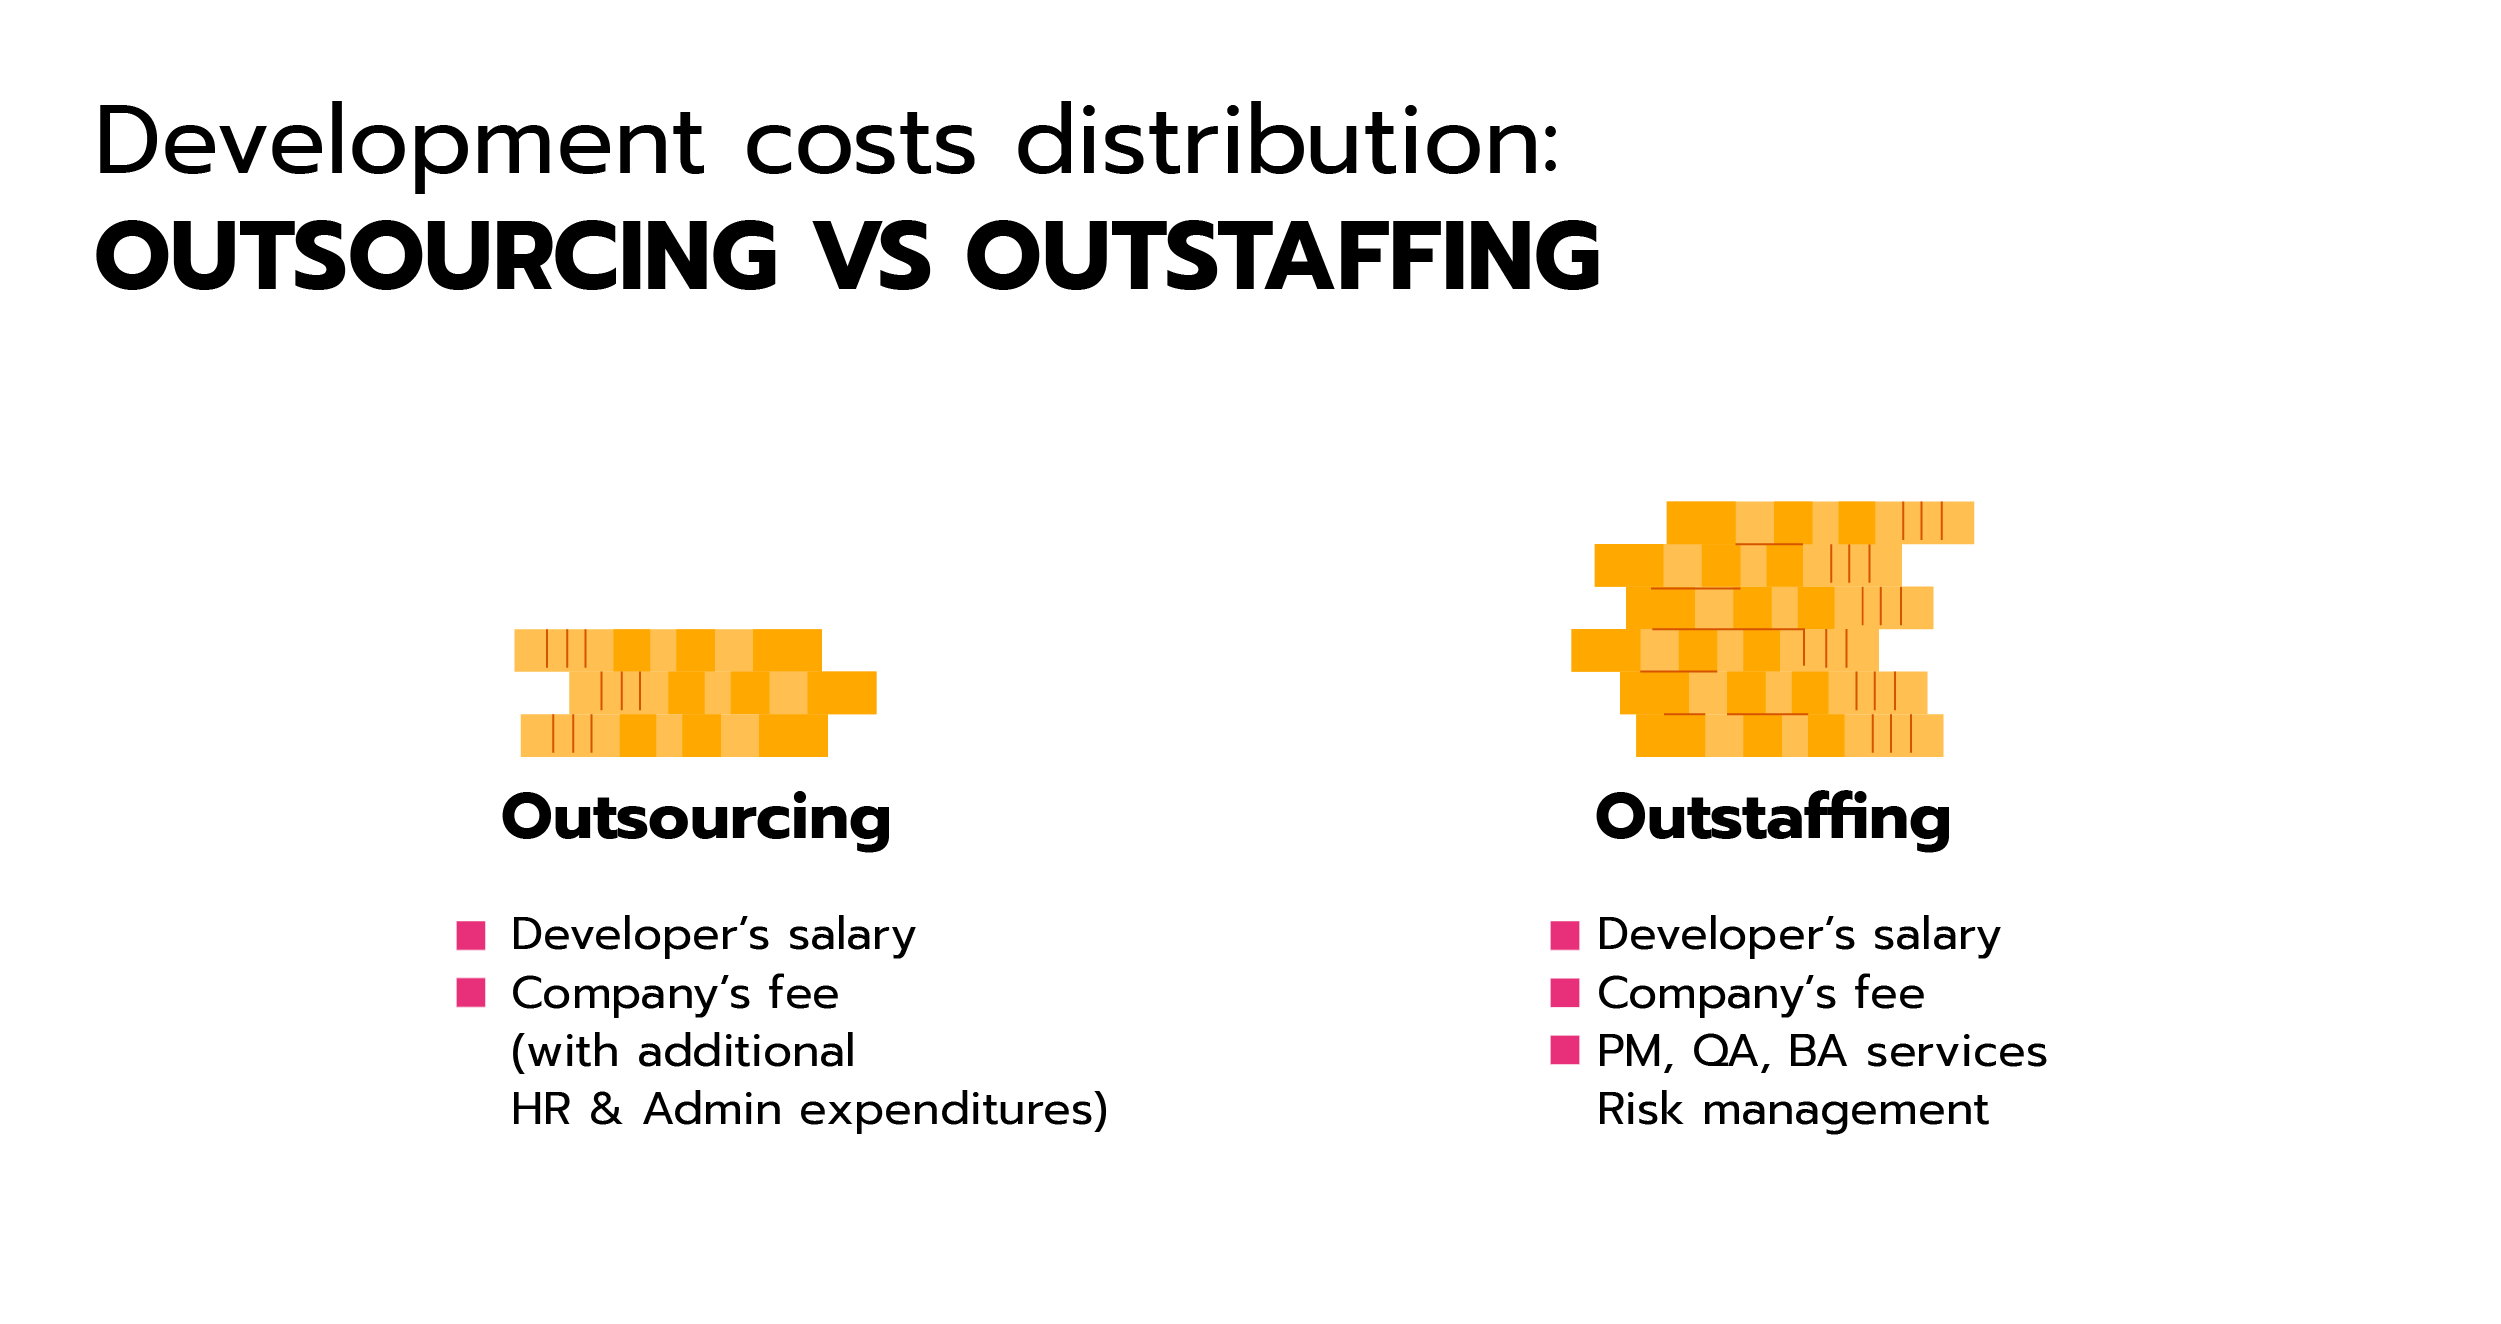 Development Costs Distribution: Outsourcing vs Outstaffing.